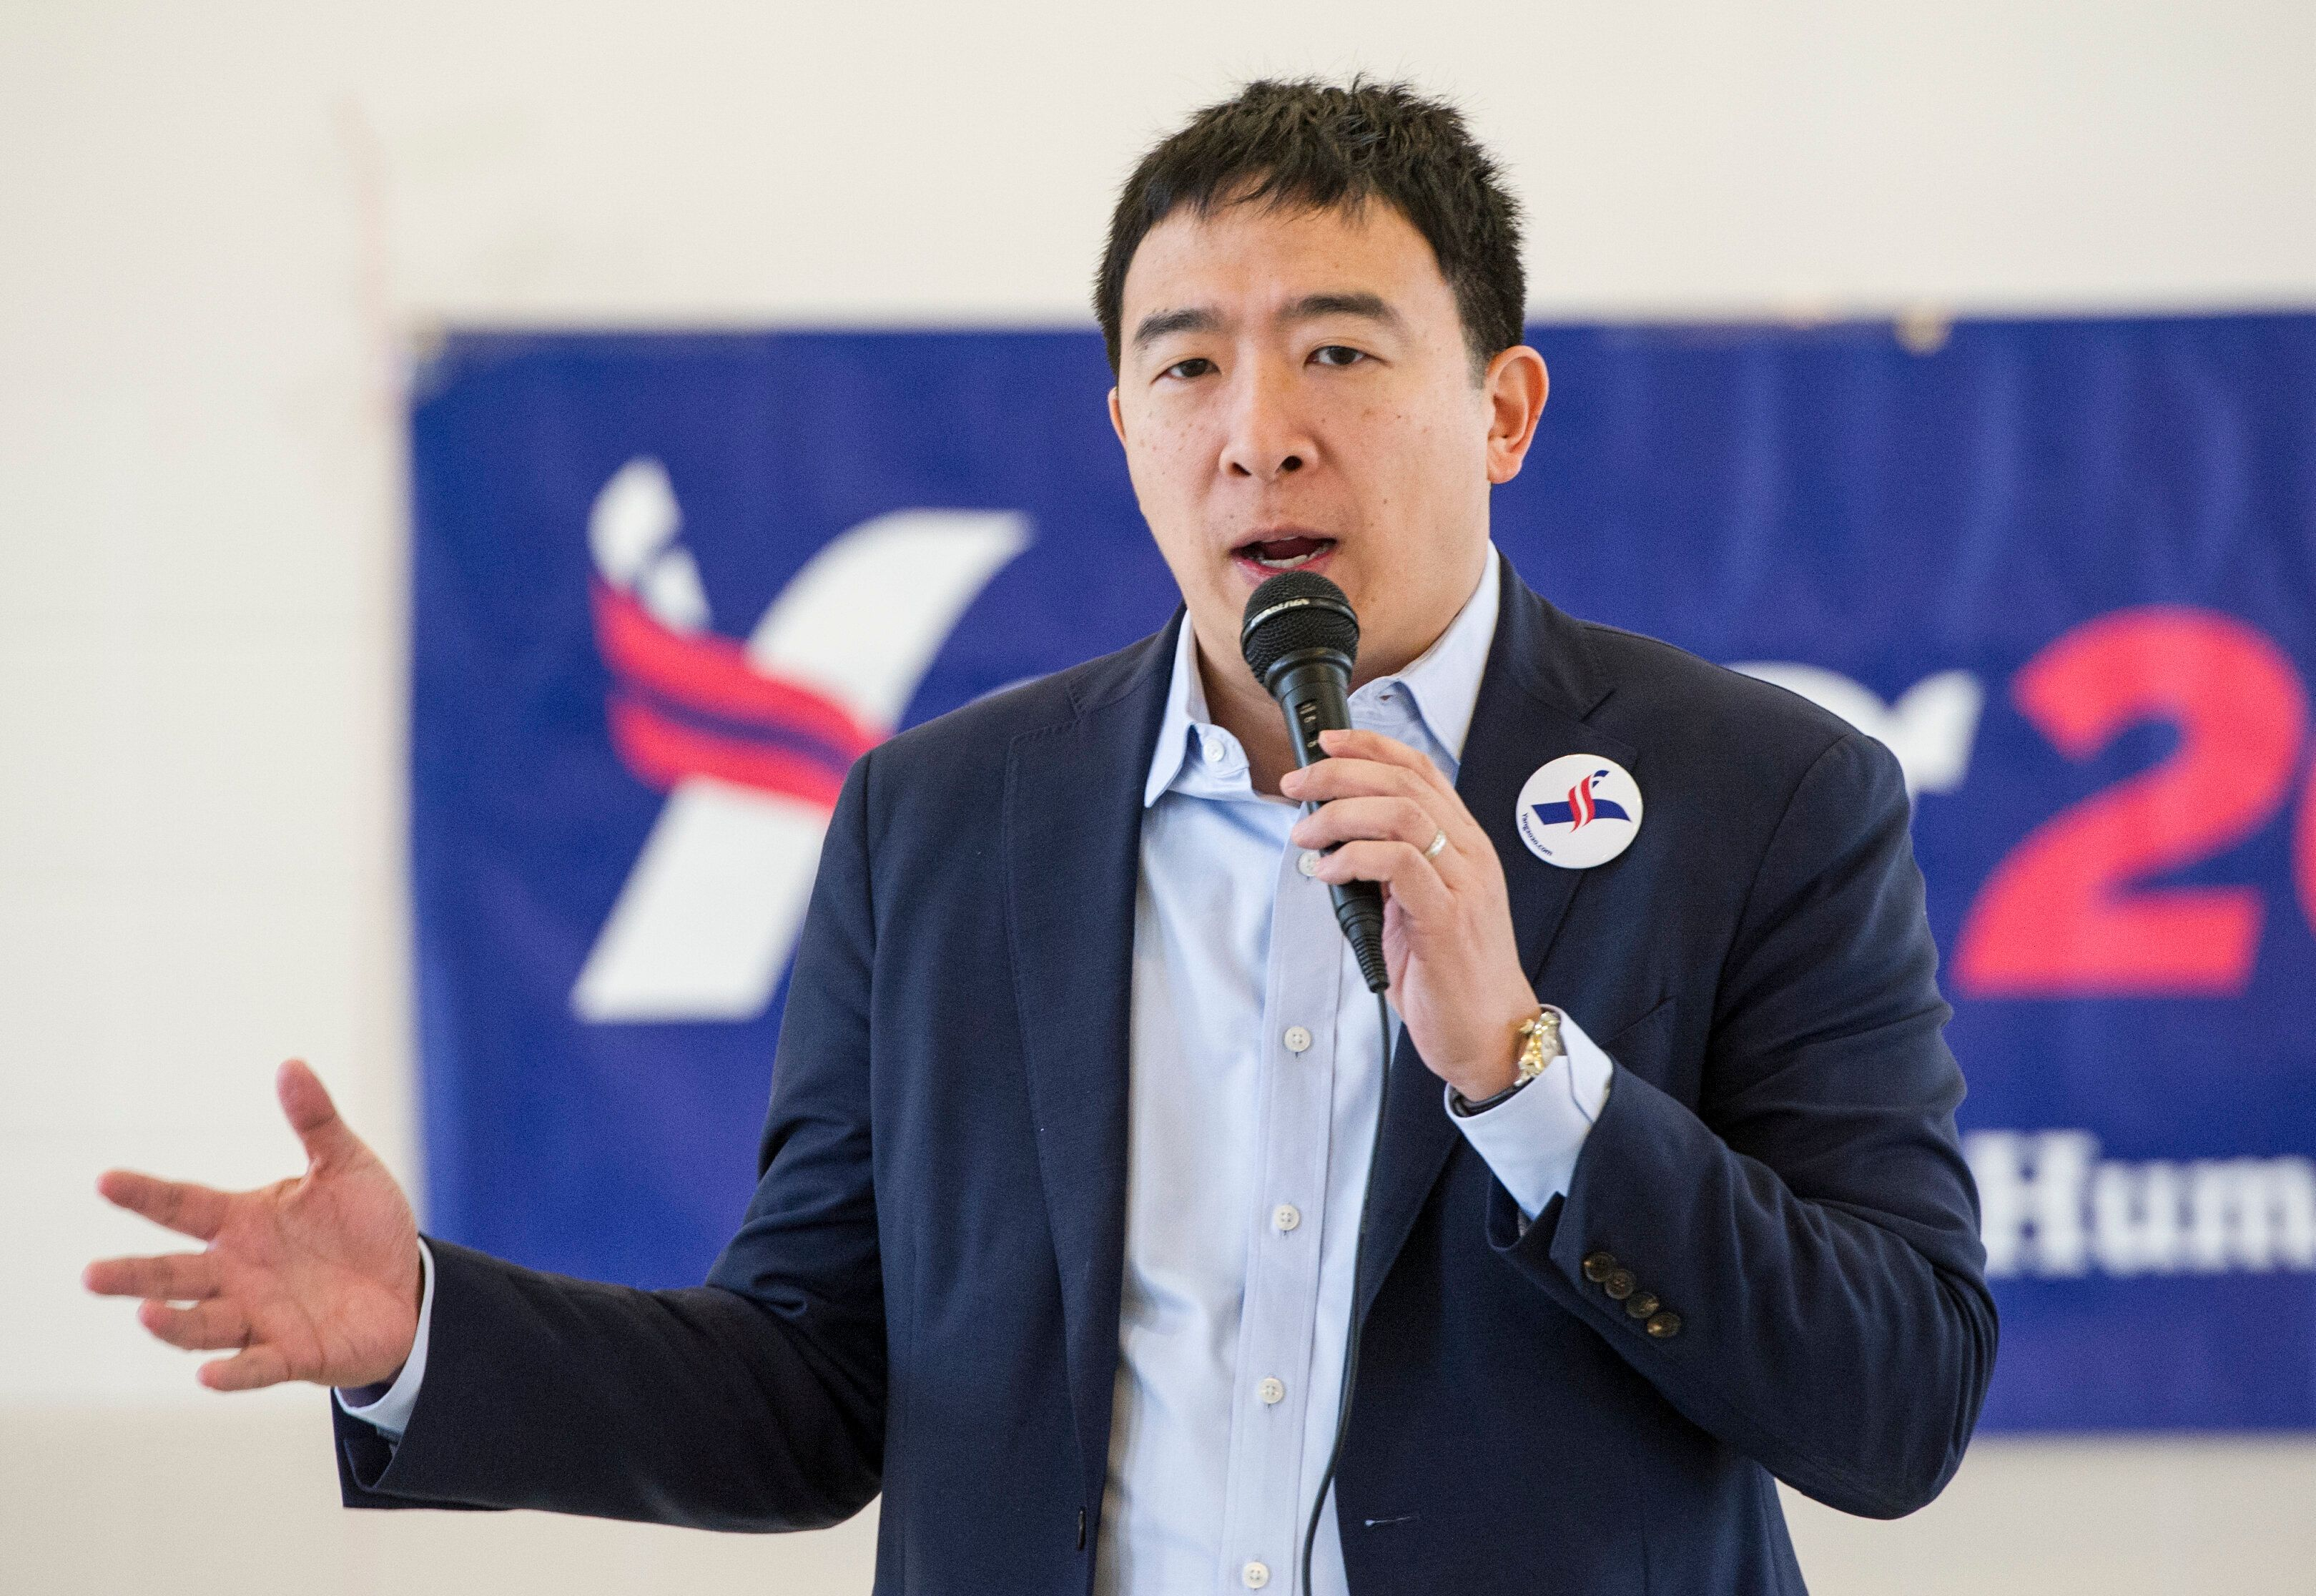 Andrew Yanghas proposed a $1,000-a-month stipendfor all U.S. citizens.